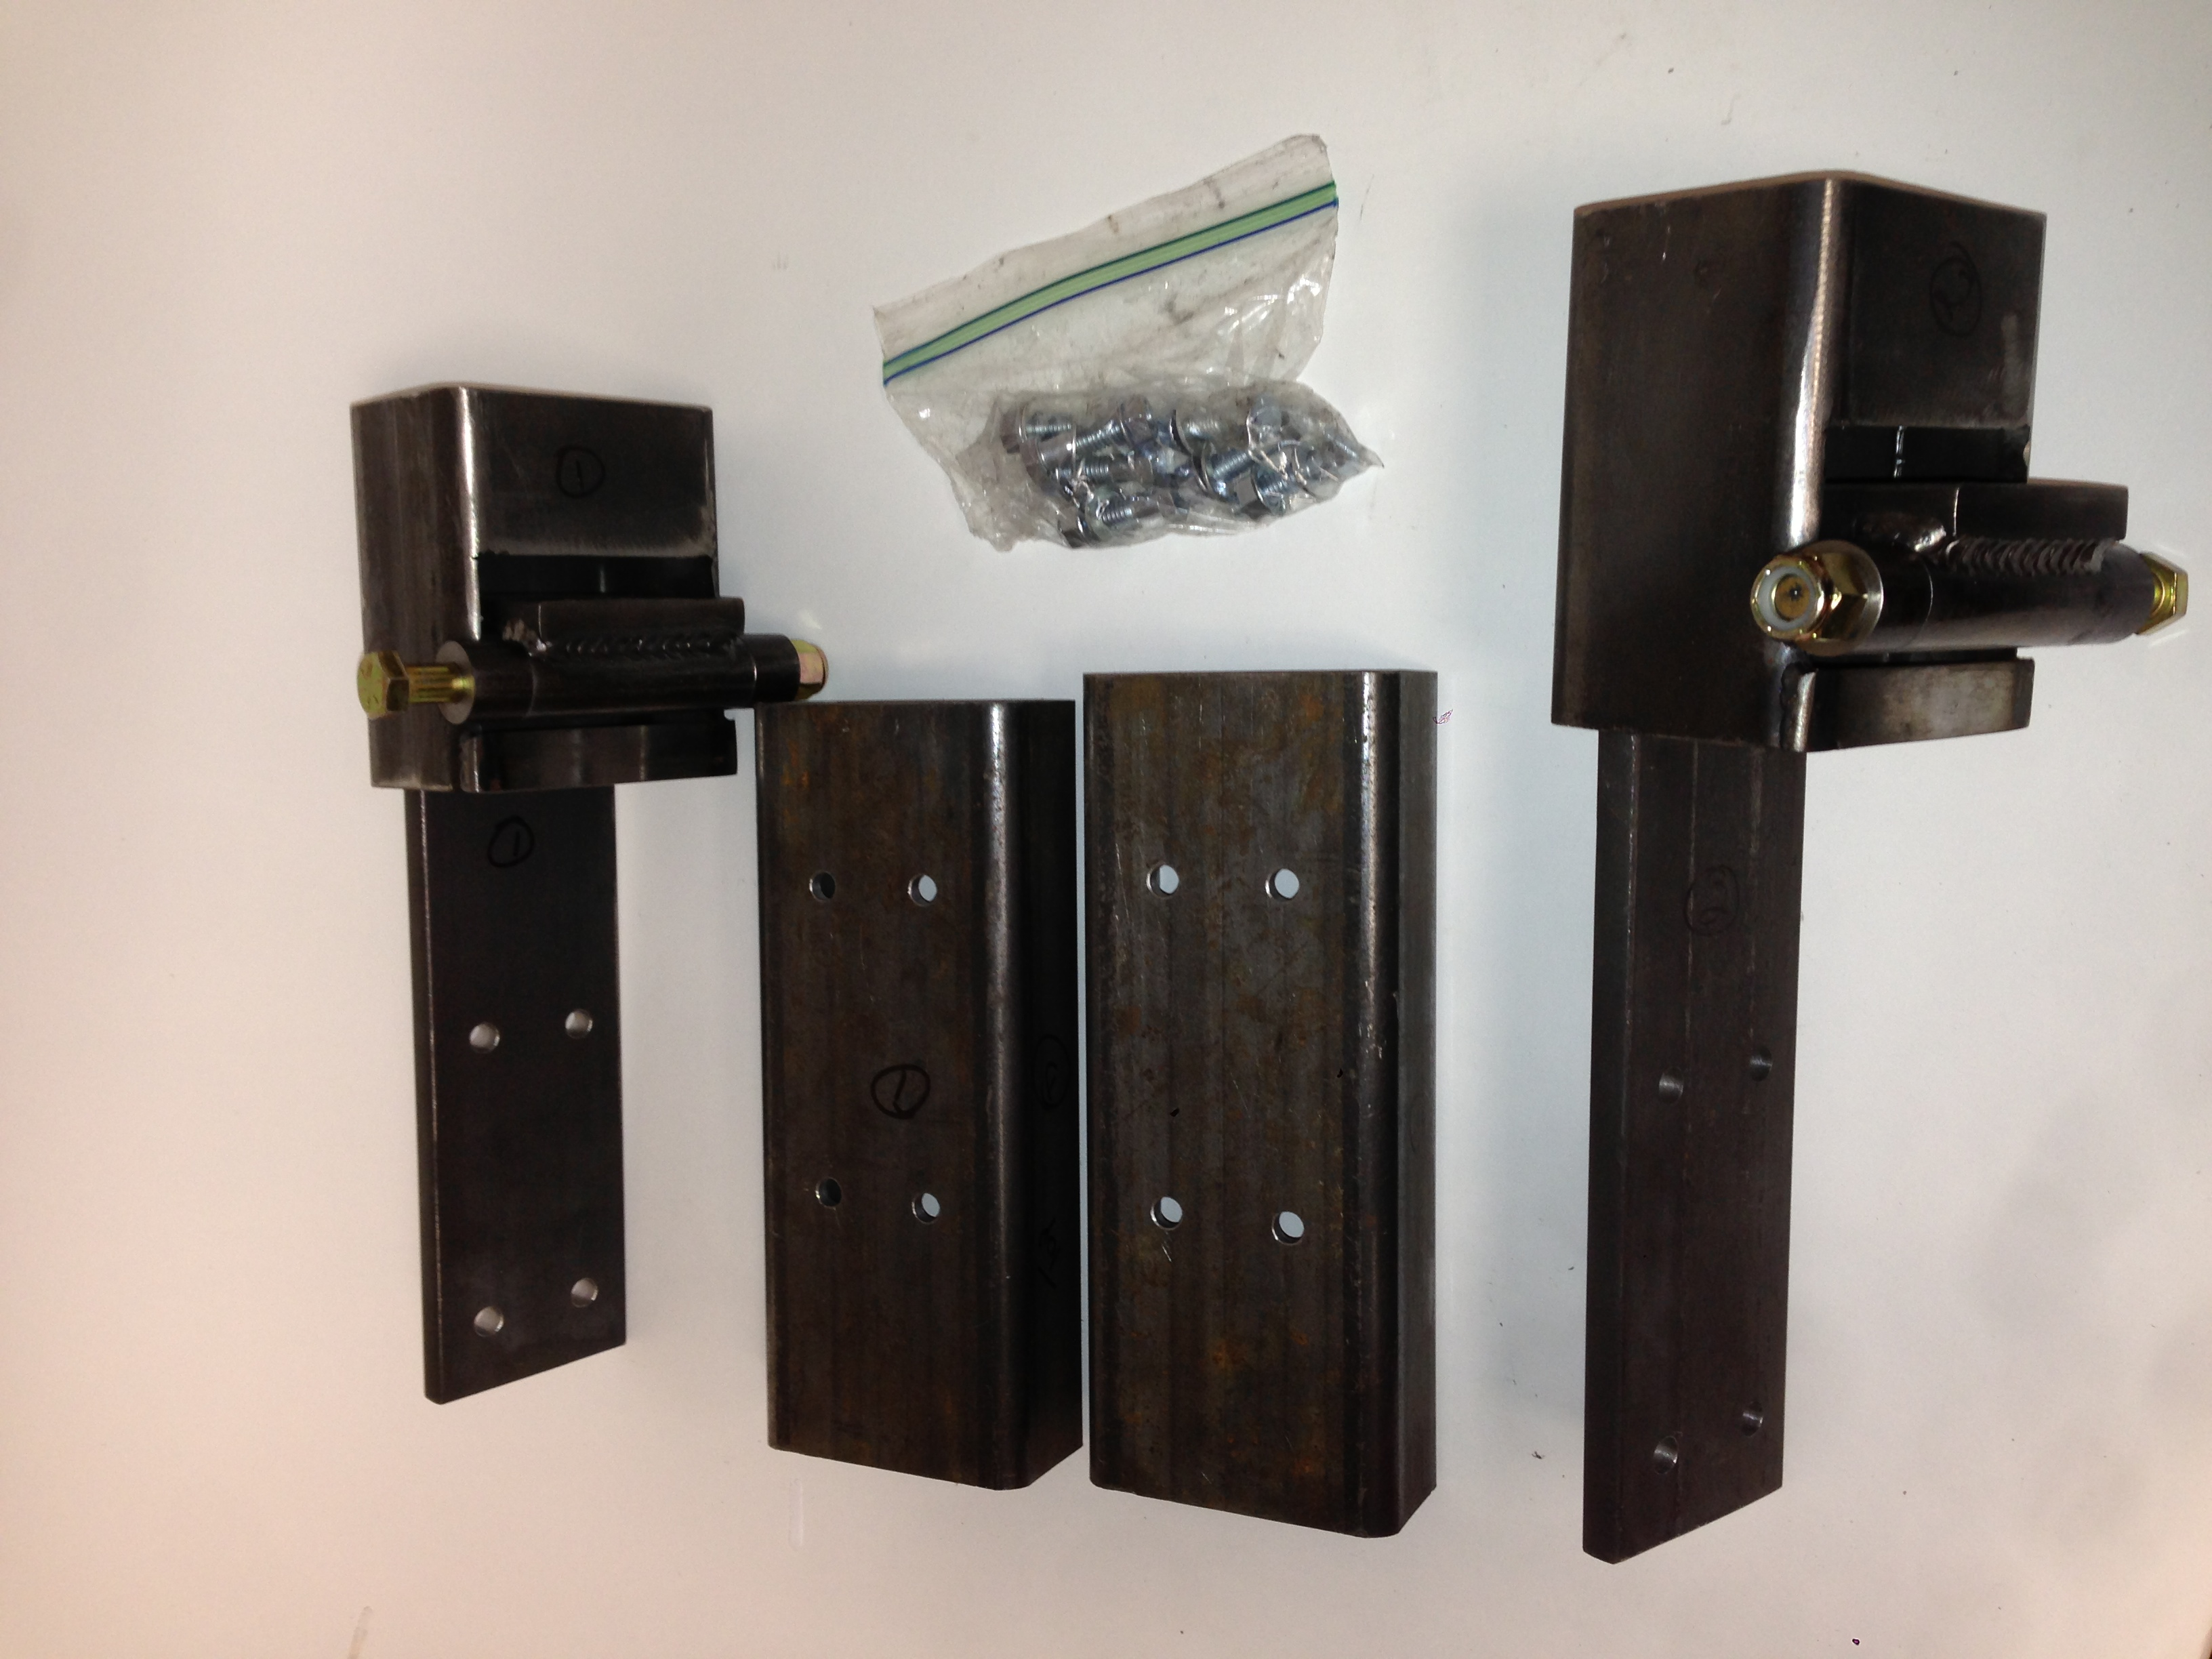 LRD Single Hinge Only Suicide Door Kit 2 door kit includes 2 hinges & hardware Heavy Duty